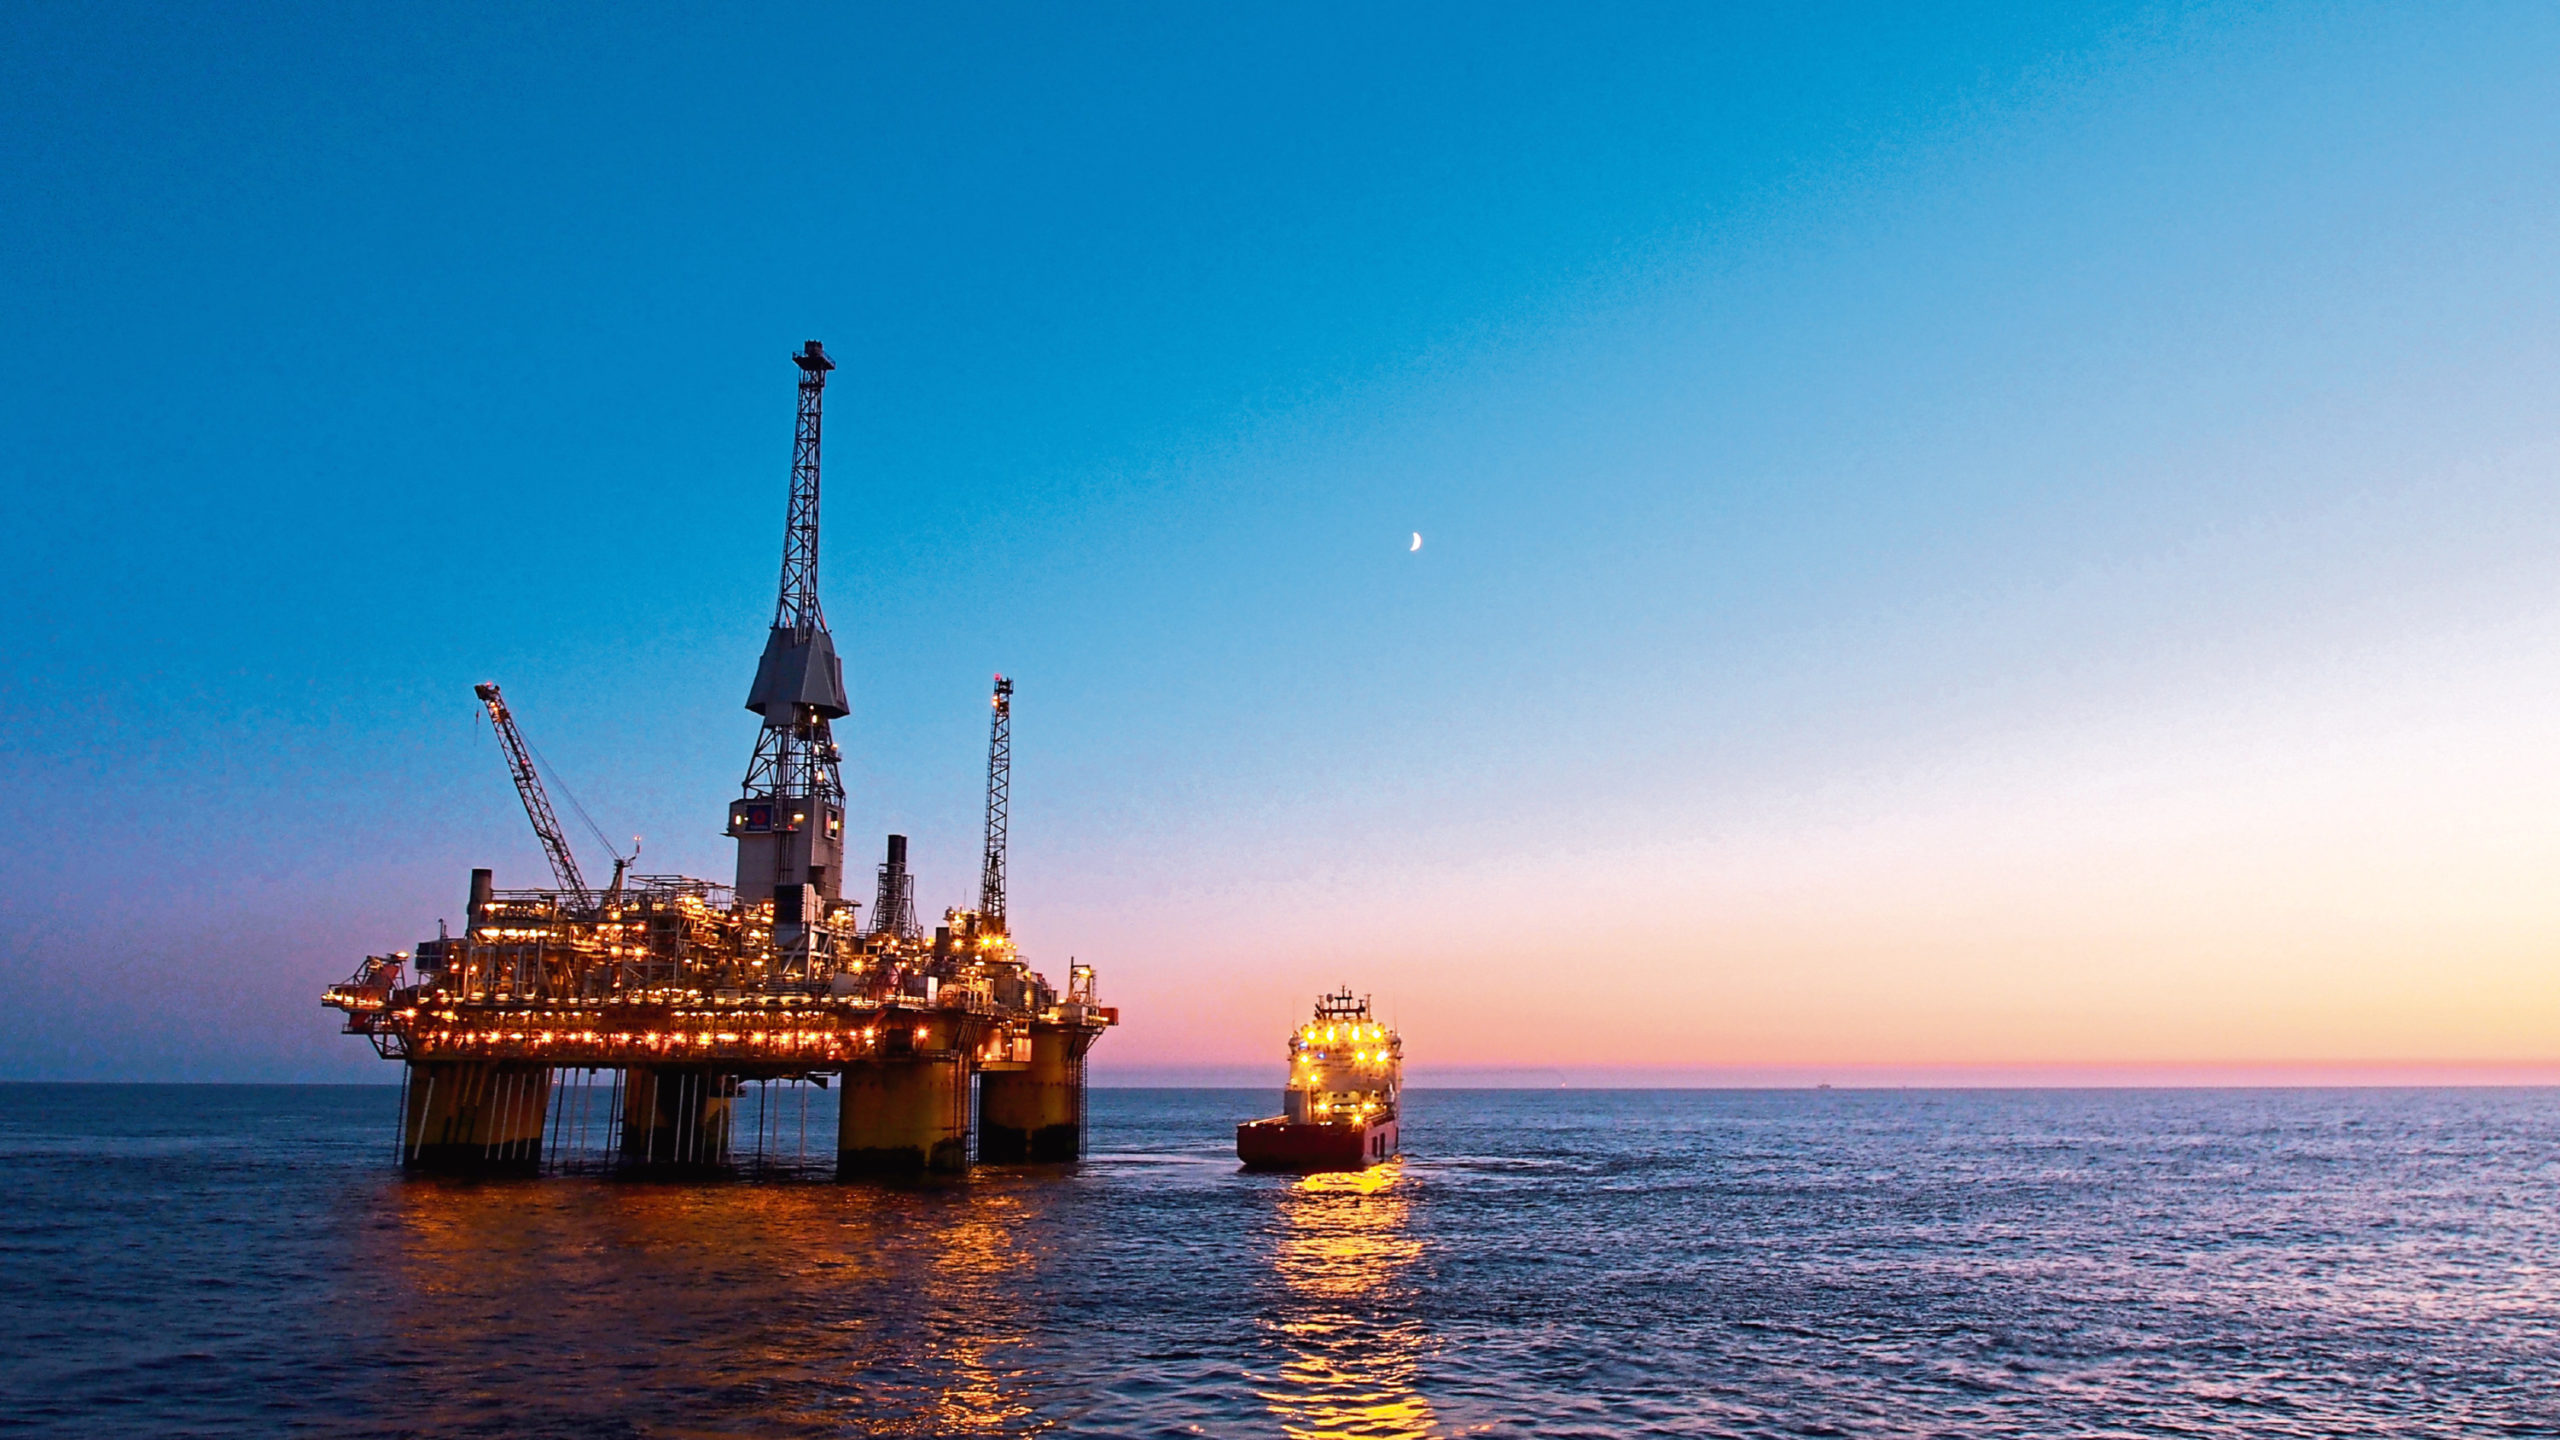 A floating production platform in the North Sea.